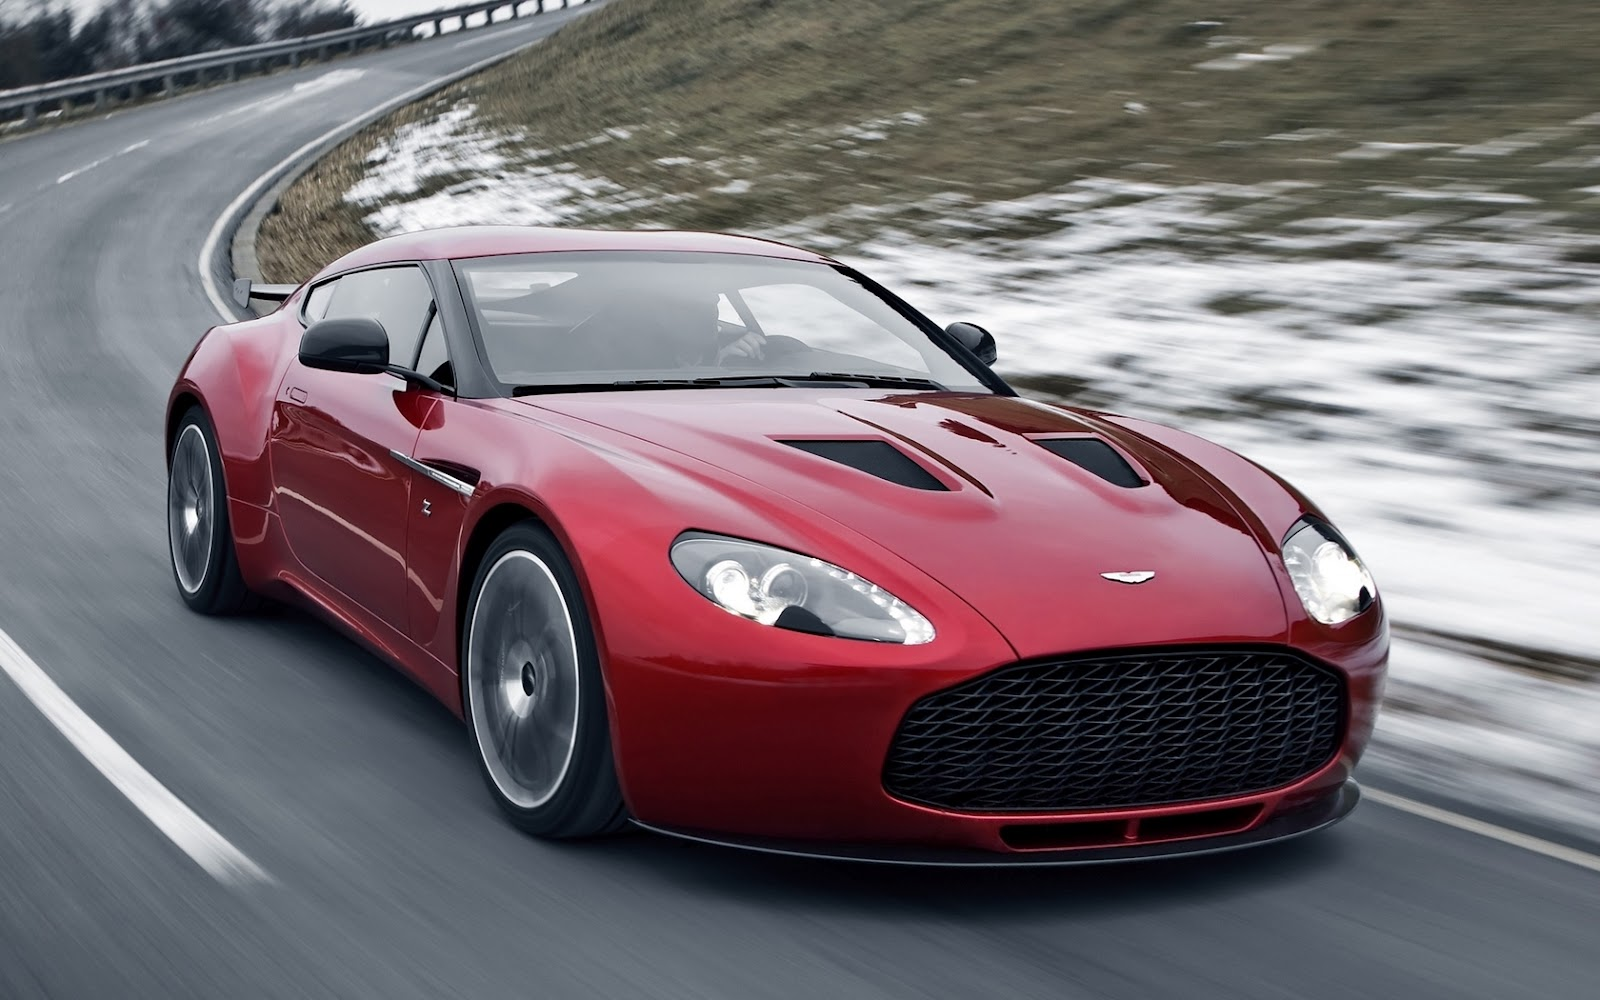 2013 Aston Martin V12 Zagato photo - 3